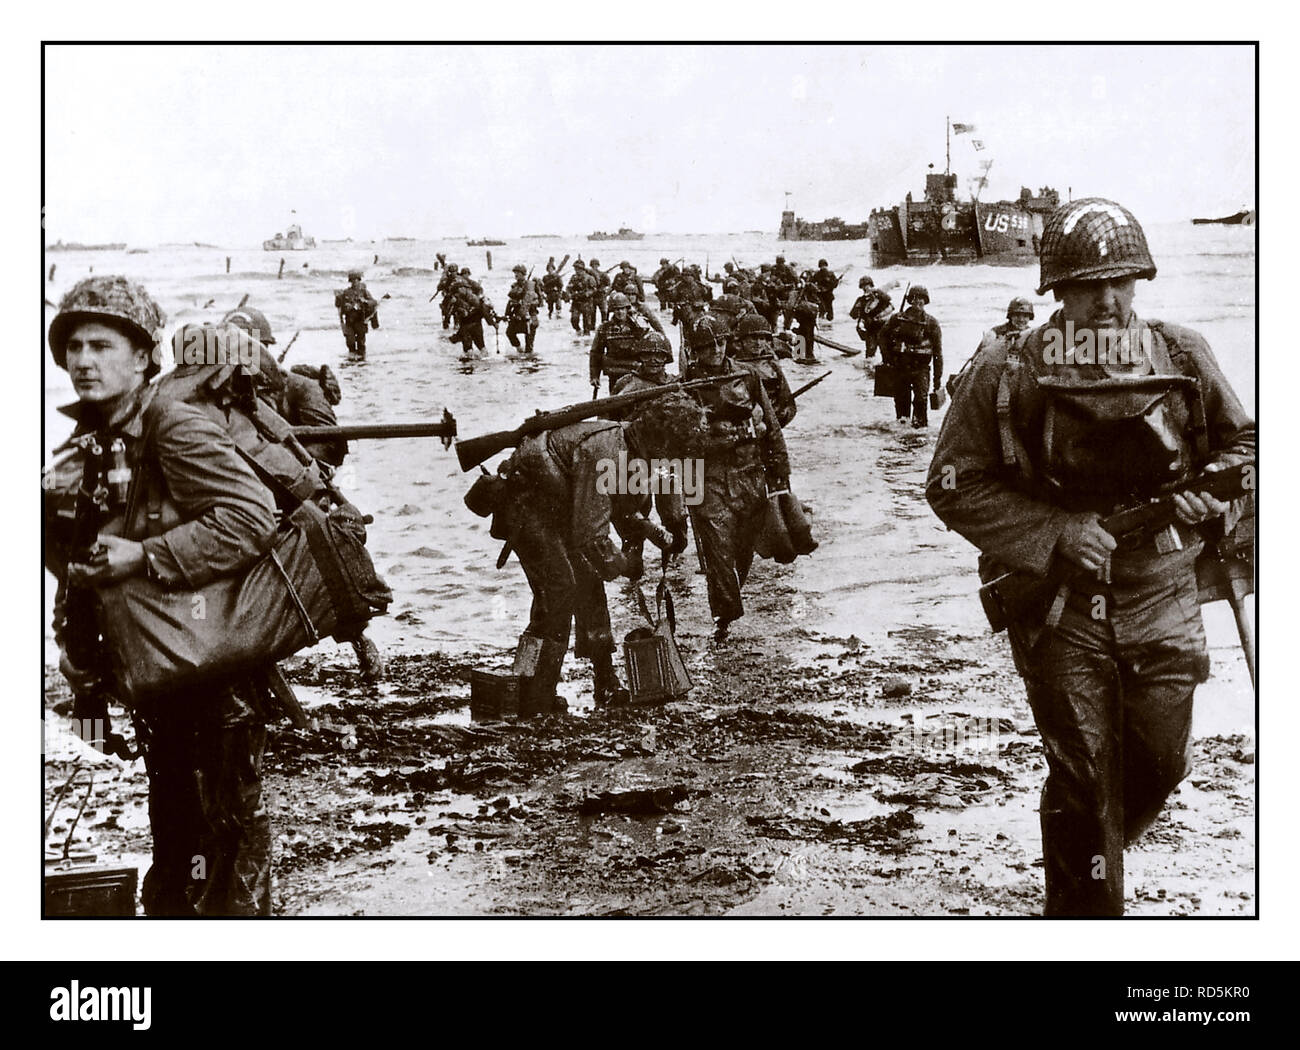 D-DAY OMAHA BEACH NORMANDY FRANCE U.S.Army GI soldiers  reinforcements land on Omaha beach during the Normandy D-Day landings near Vierville sur Mer, France, on June 6, 1944 - Stock Image